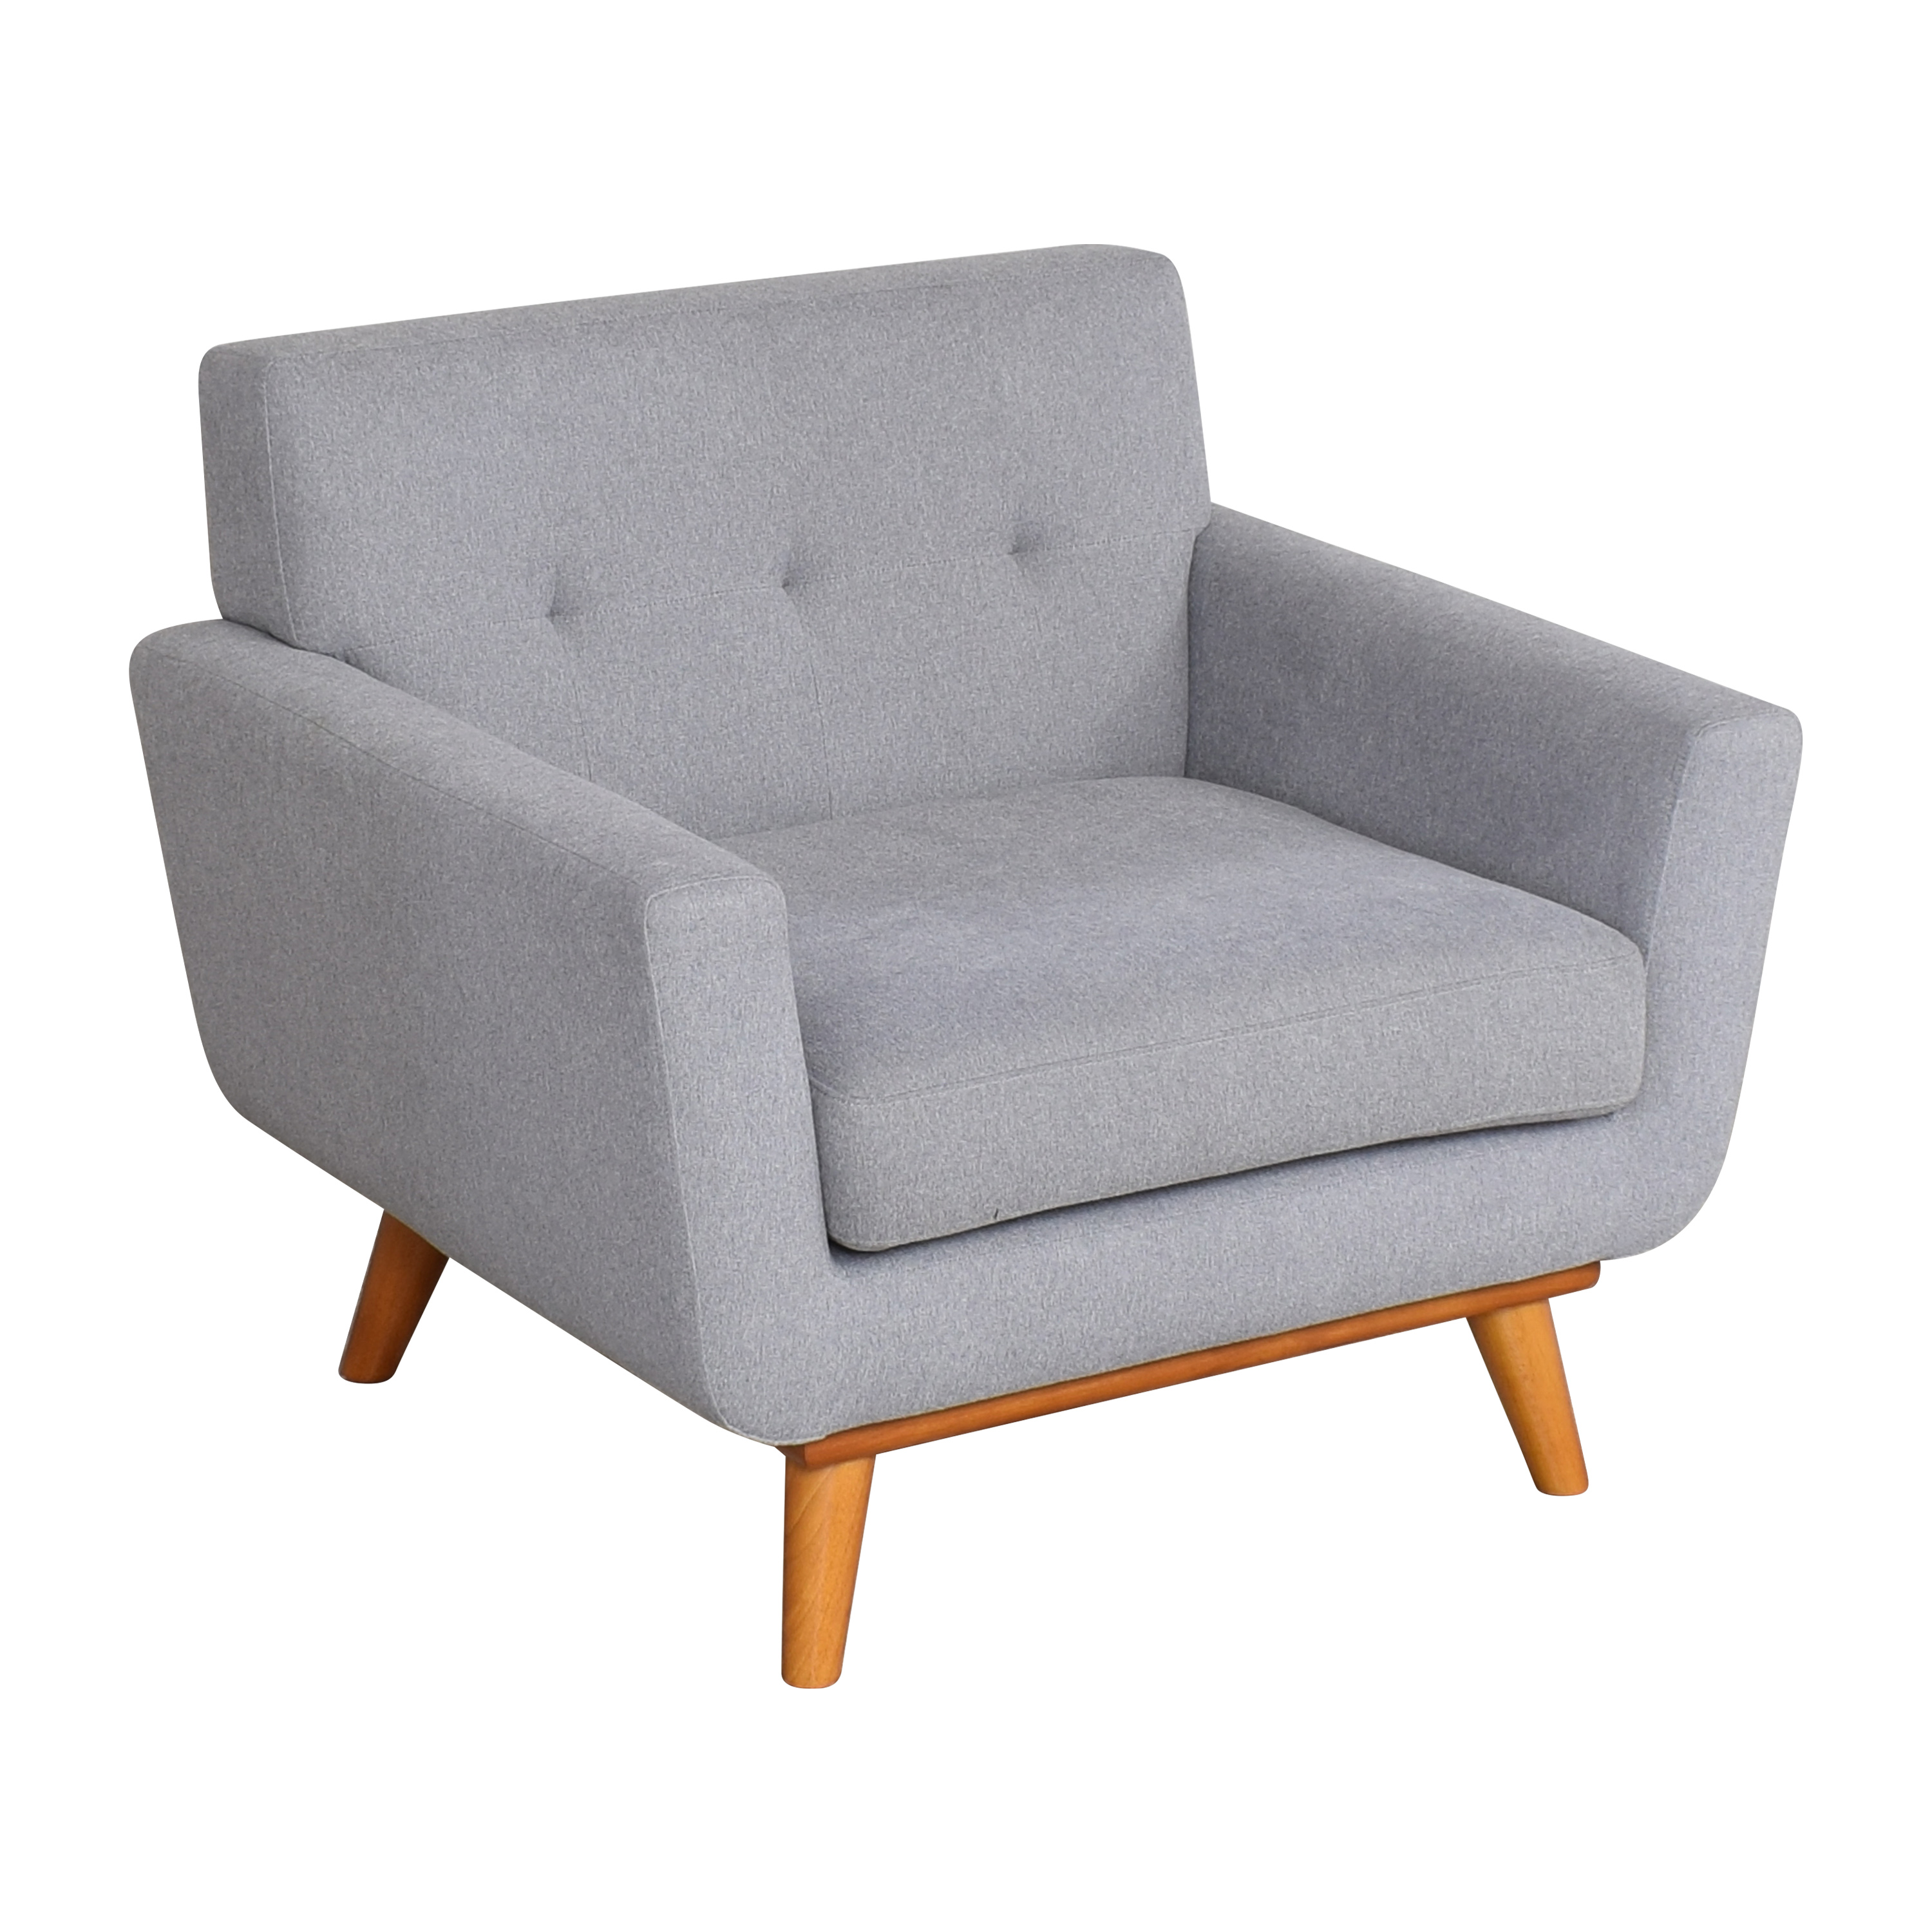 shop Modway Engage Chair Modway Chairs